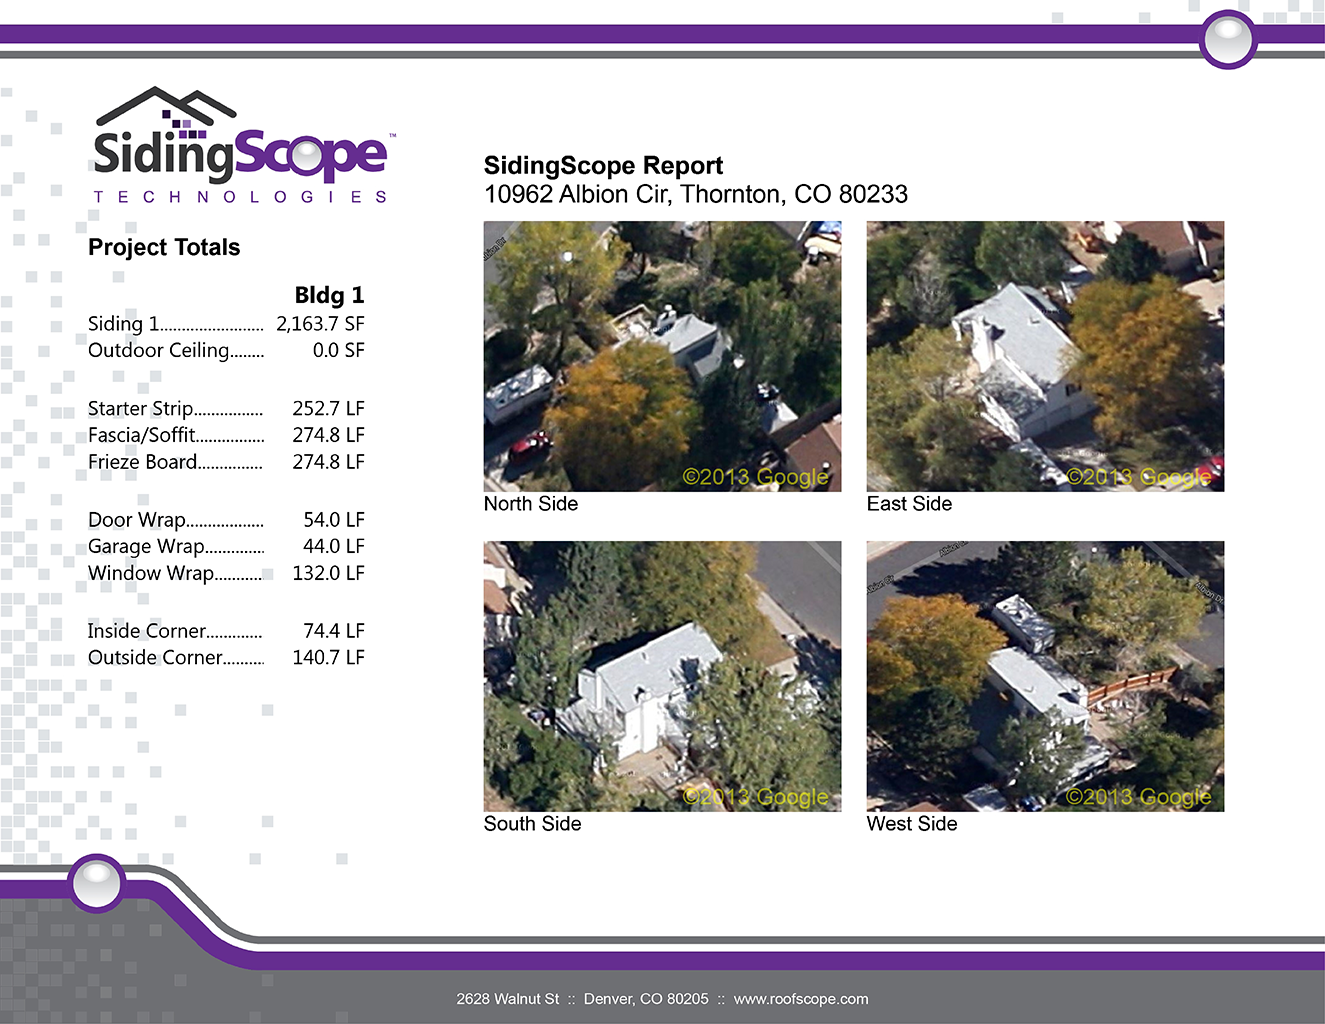 Scope Technologies 174 Launches New Product To Save Siding Contractors Time Money And Manpower